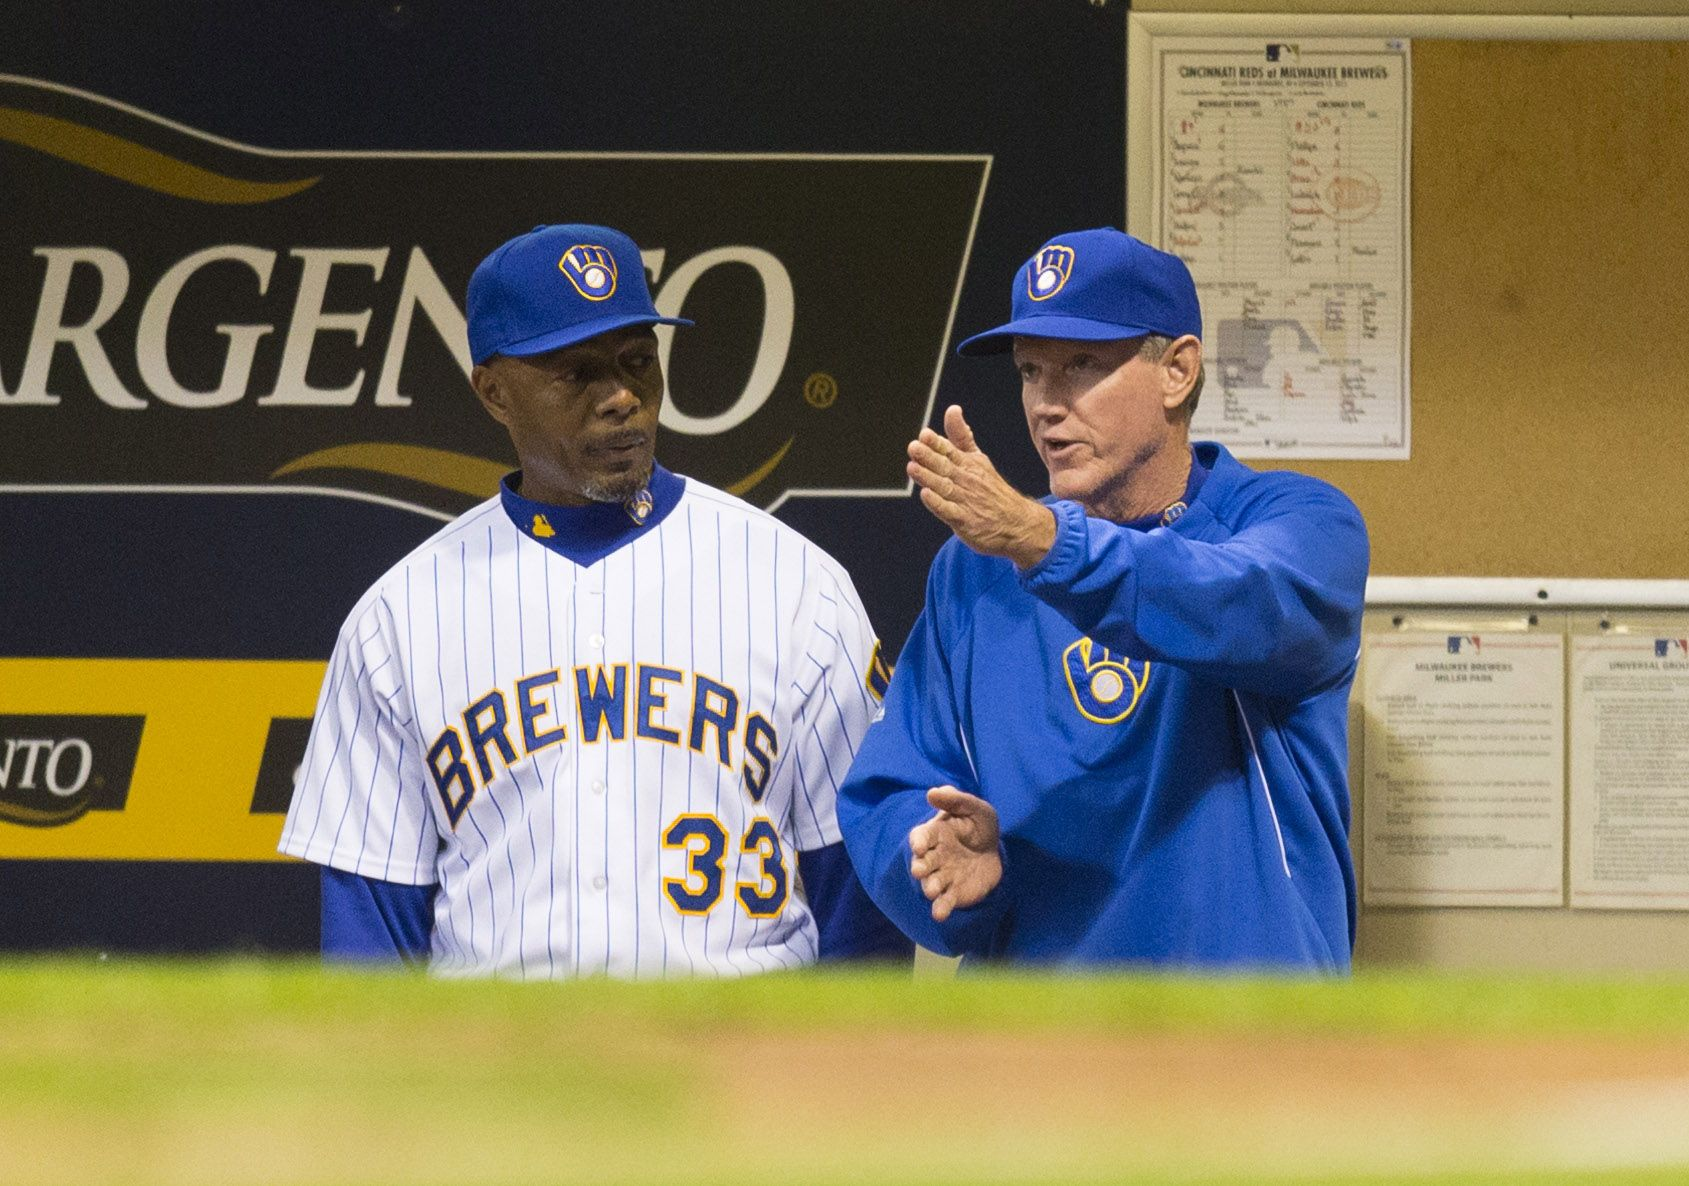 Crowdcam Hot Shot Milwaukee Brewers Manager Ron Roenicke Talks With Coach John Shelby During The Eighth Inning Aga Cincinnati Reds Milwaukee Brewers Milwaukee